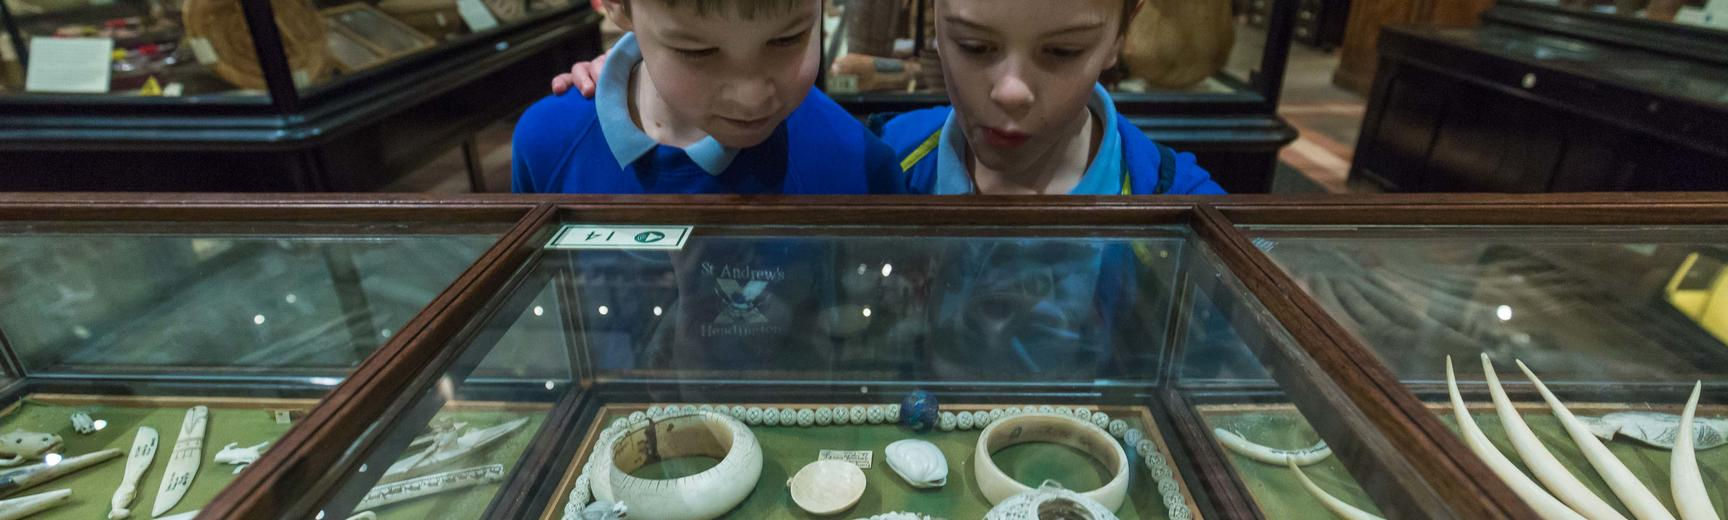 Two boys dressed in school uniform stare in wonder at objects intricately carved from ivory in the case in front of them.